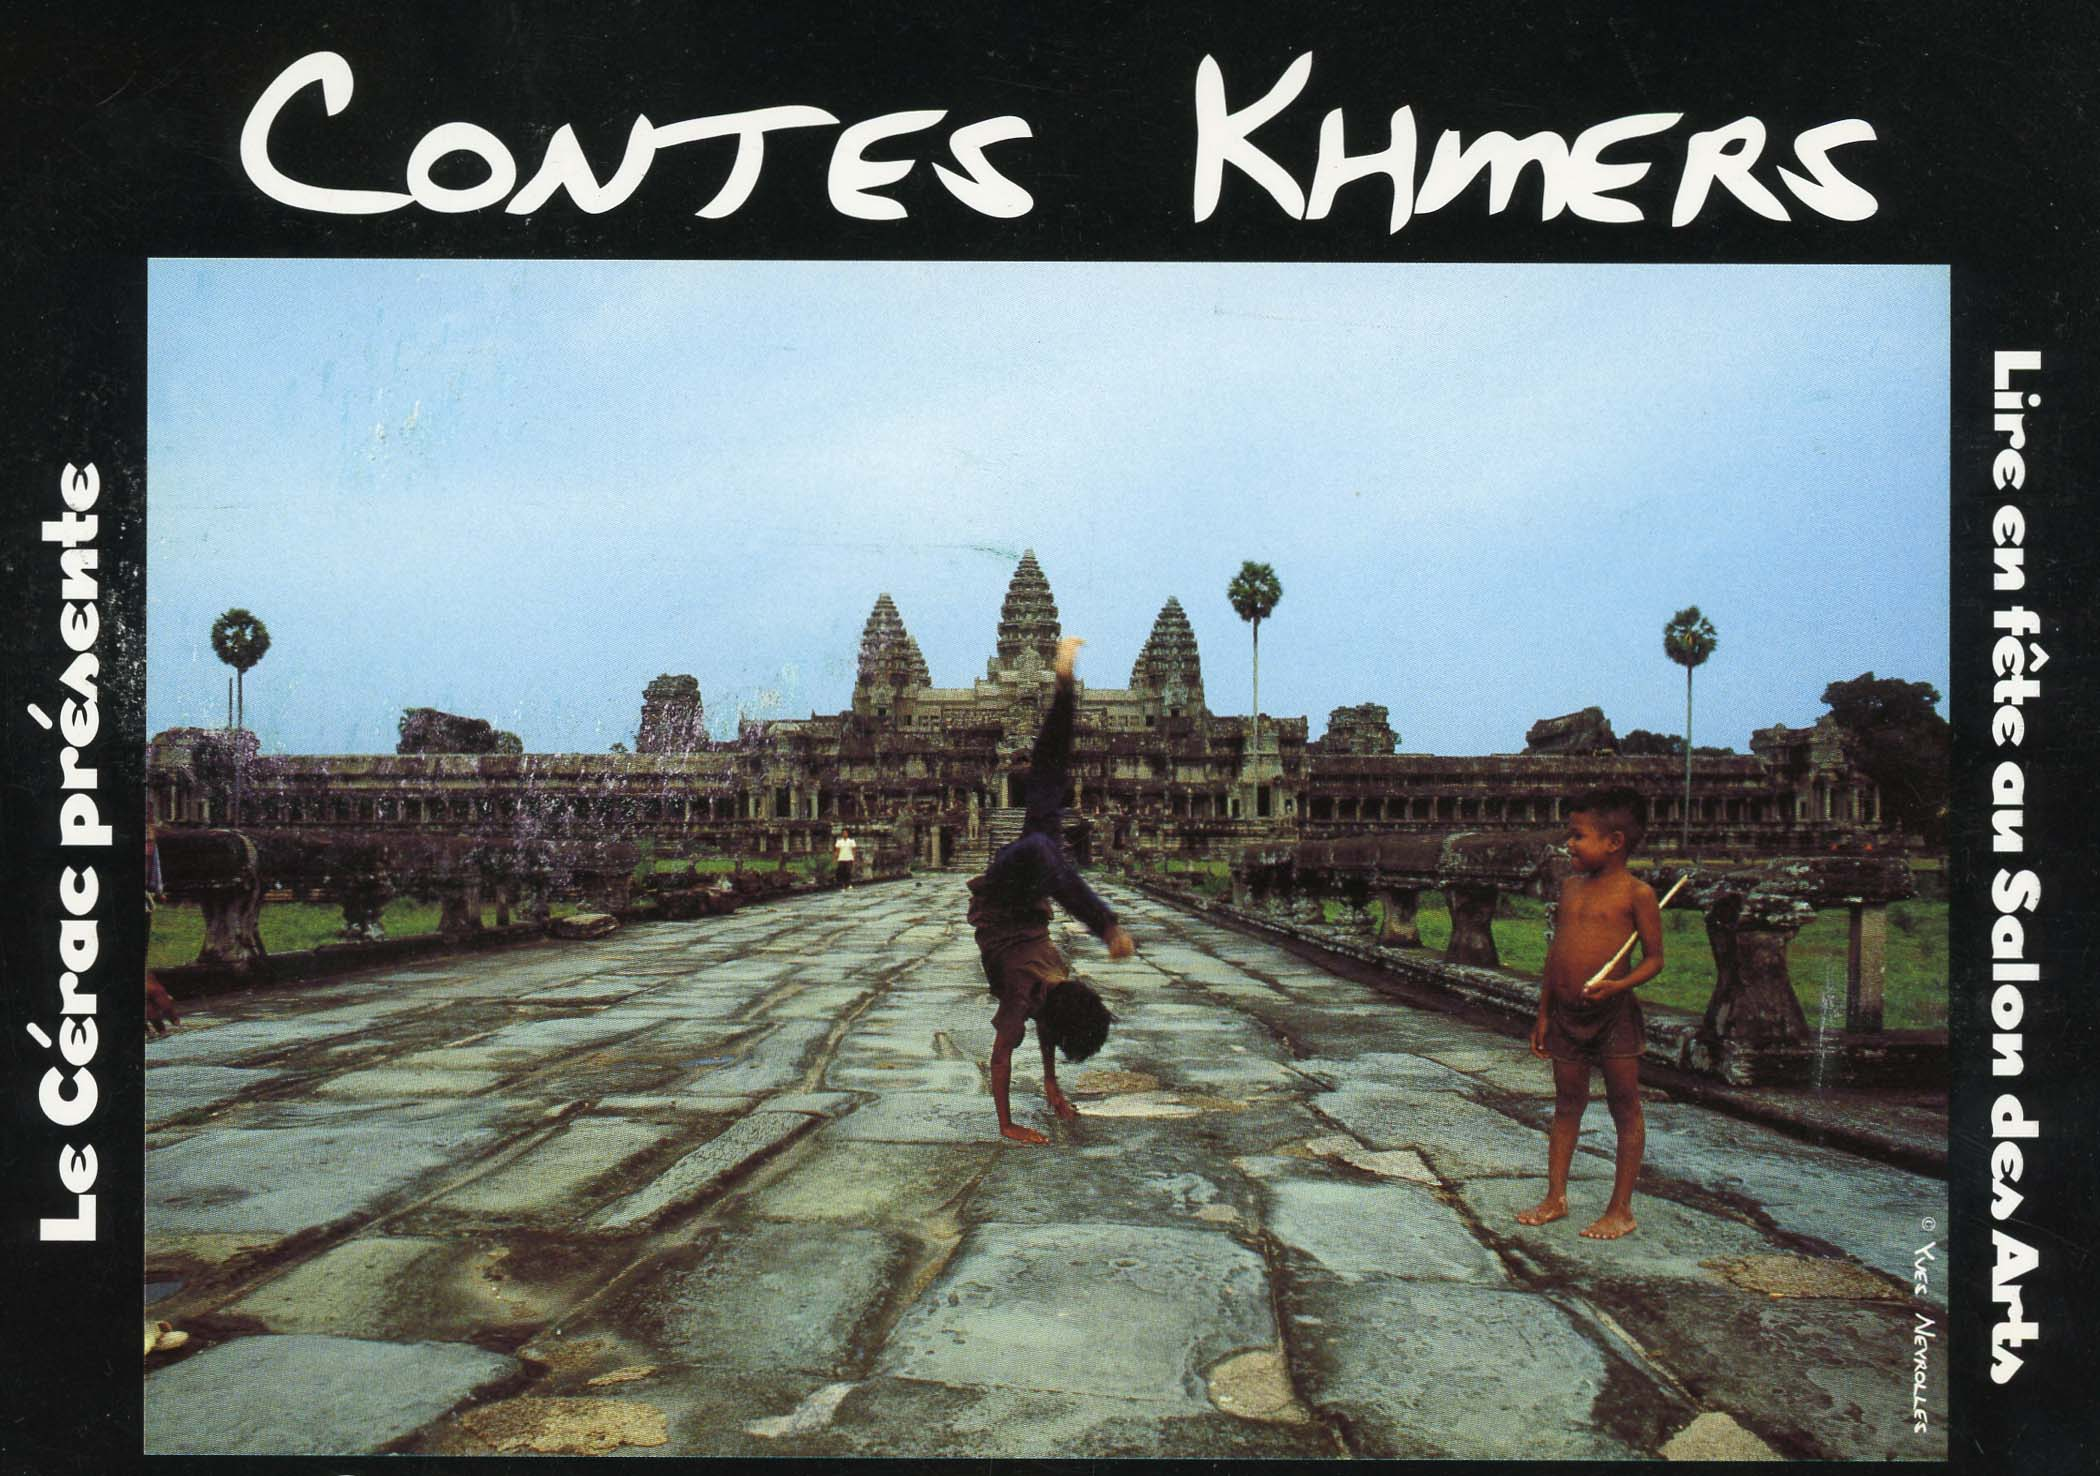 khmers photo